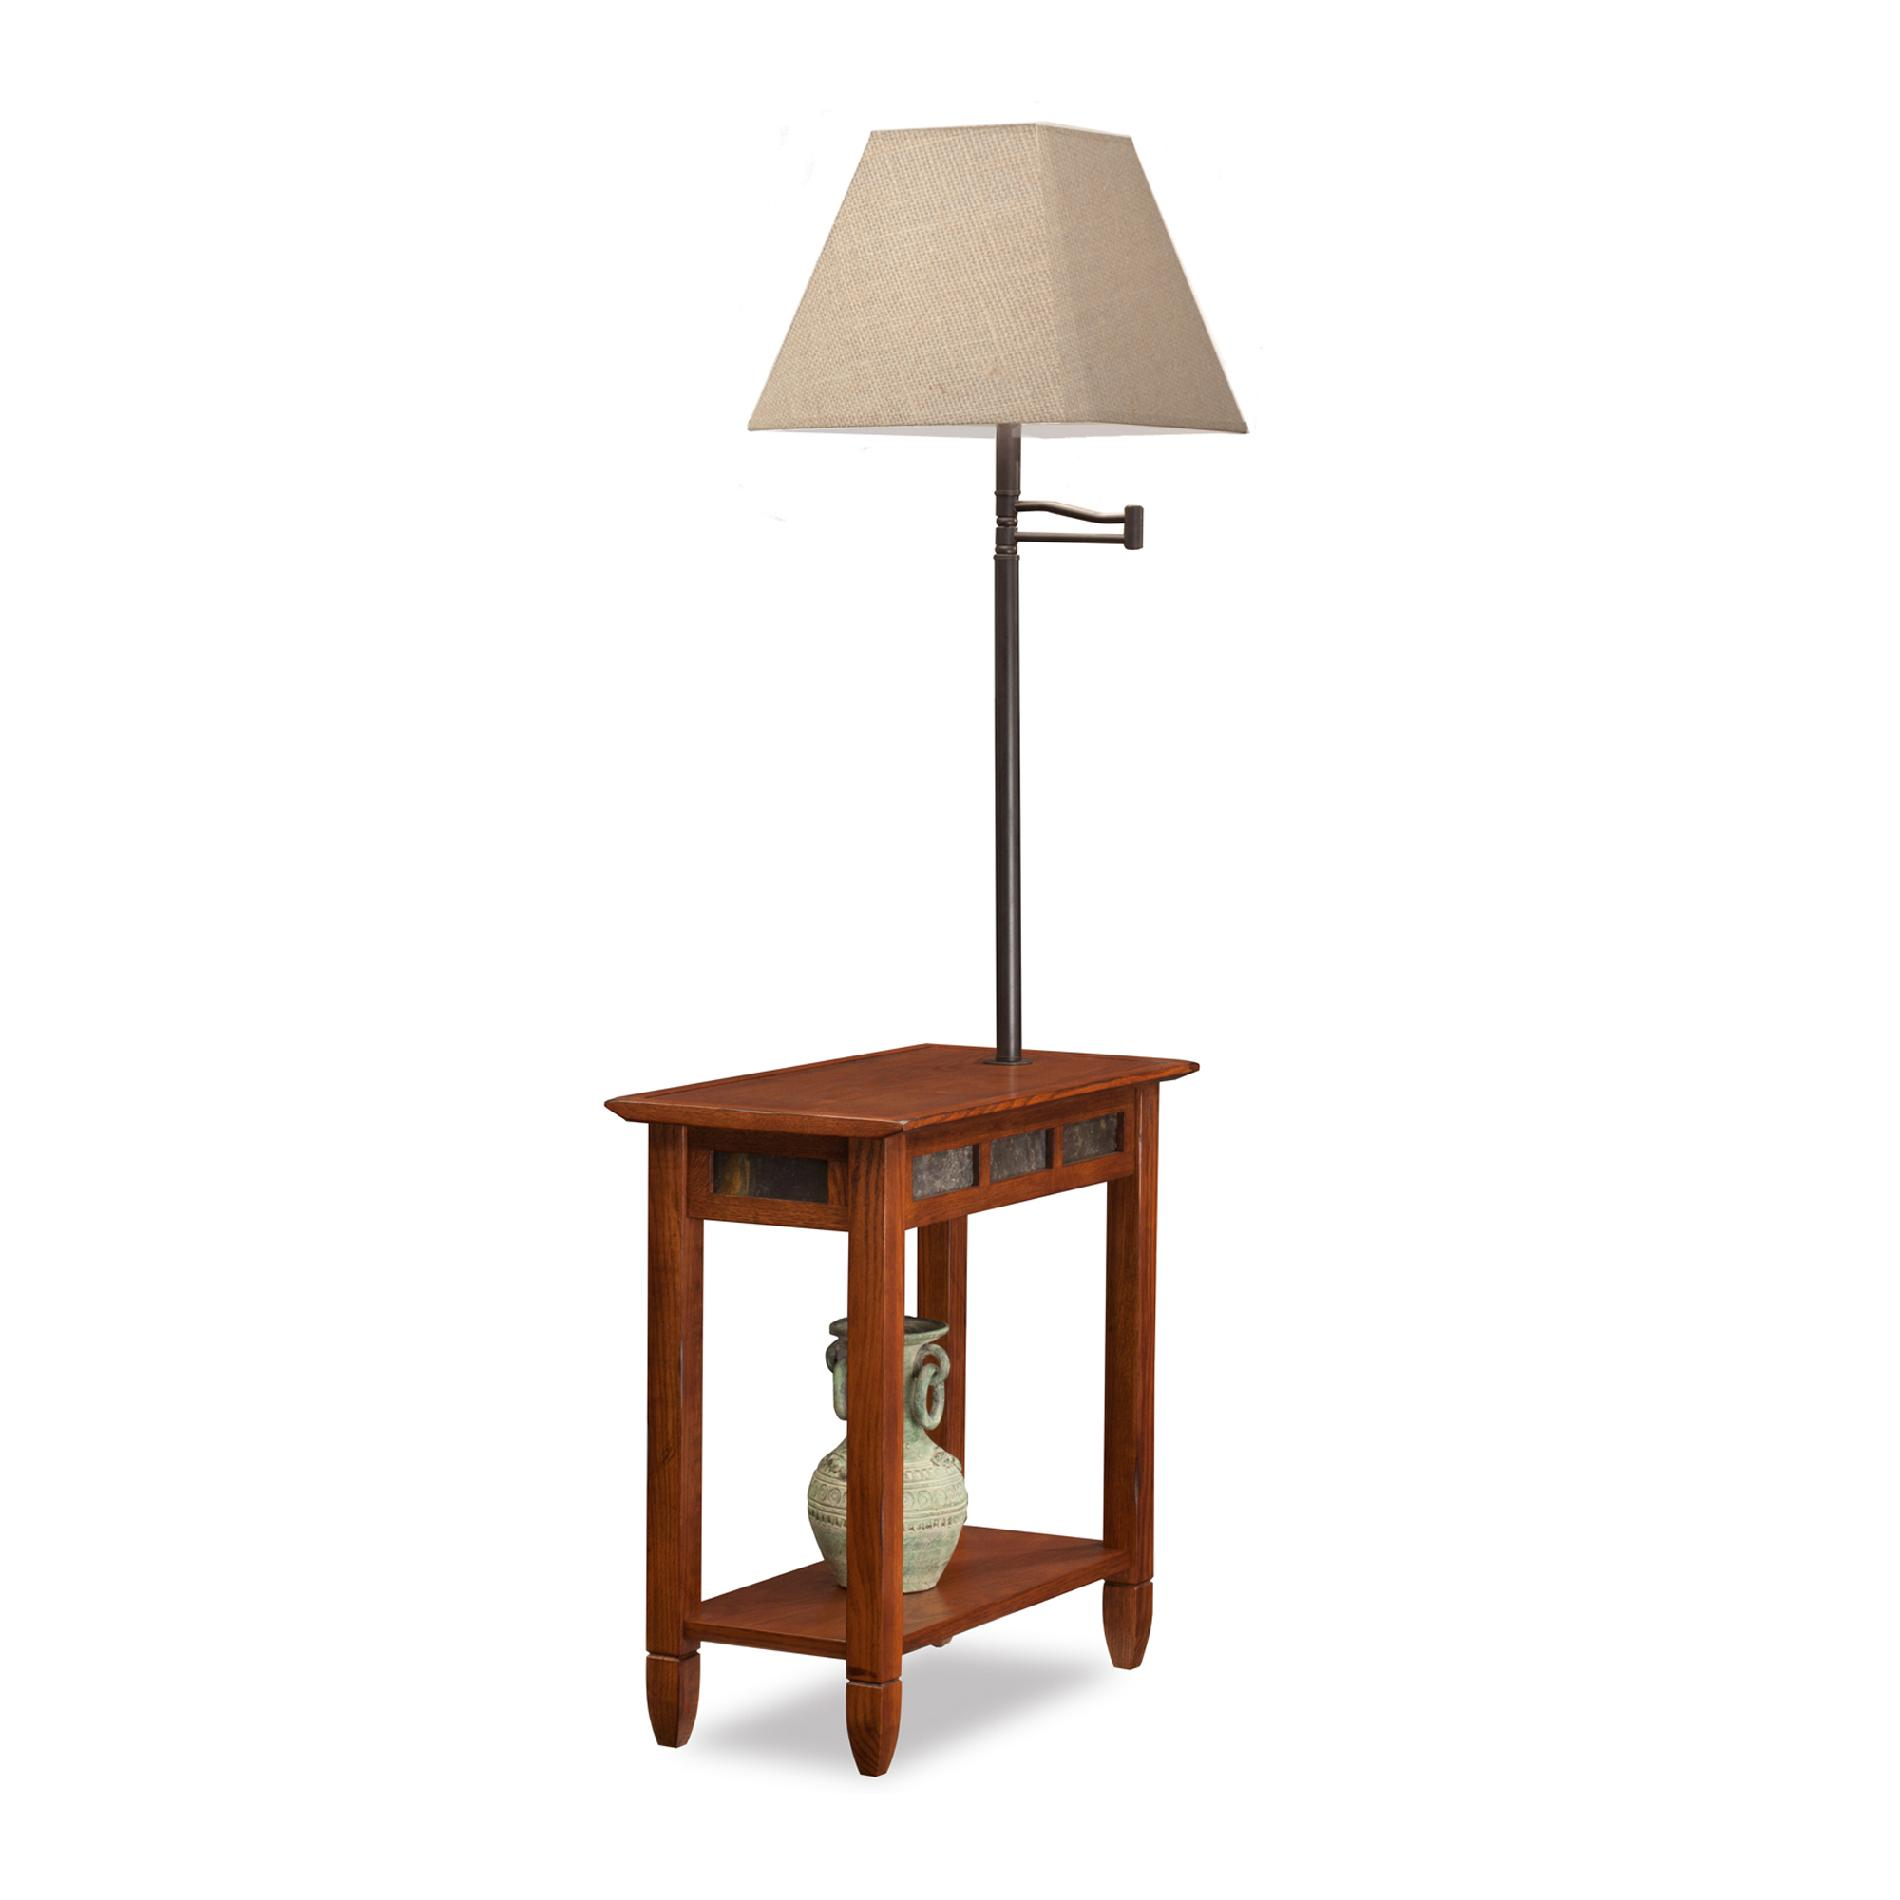 Leick Leick Rustic Slate Chairside Lamp End Table